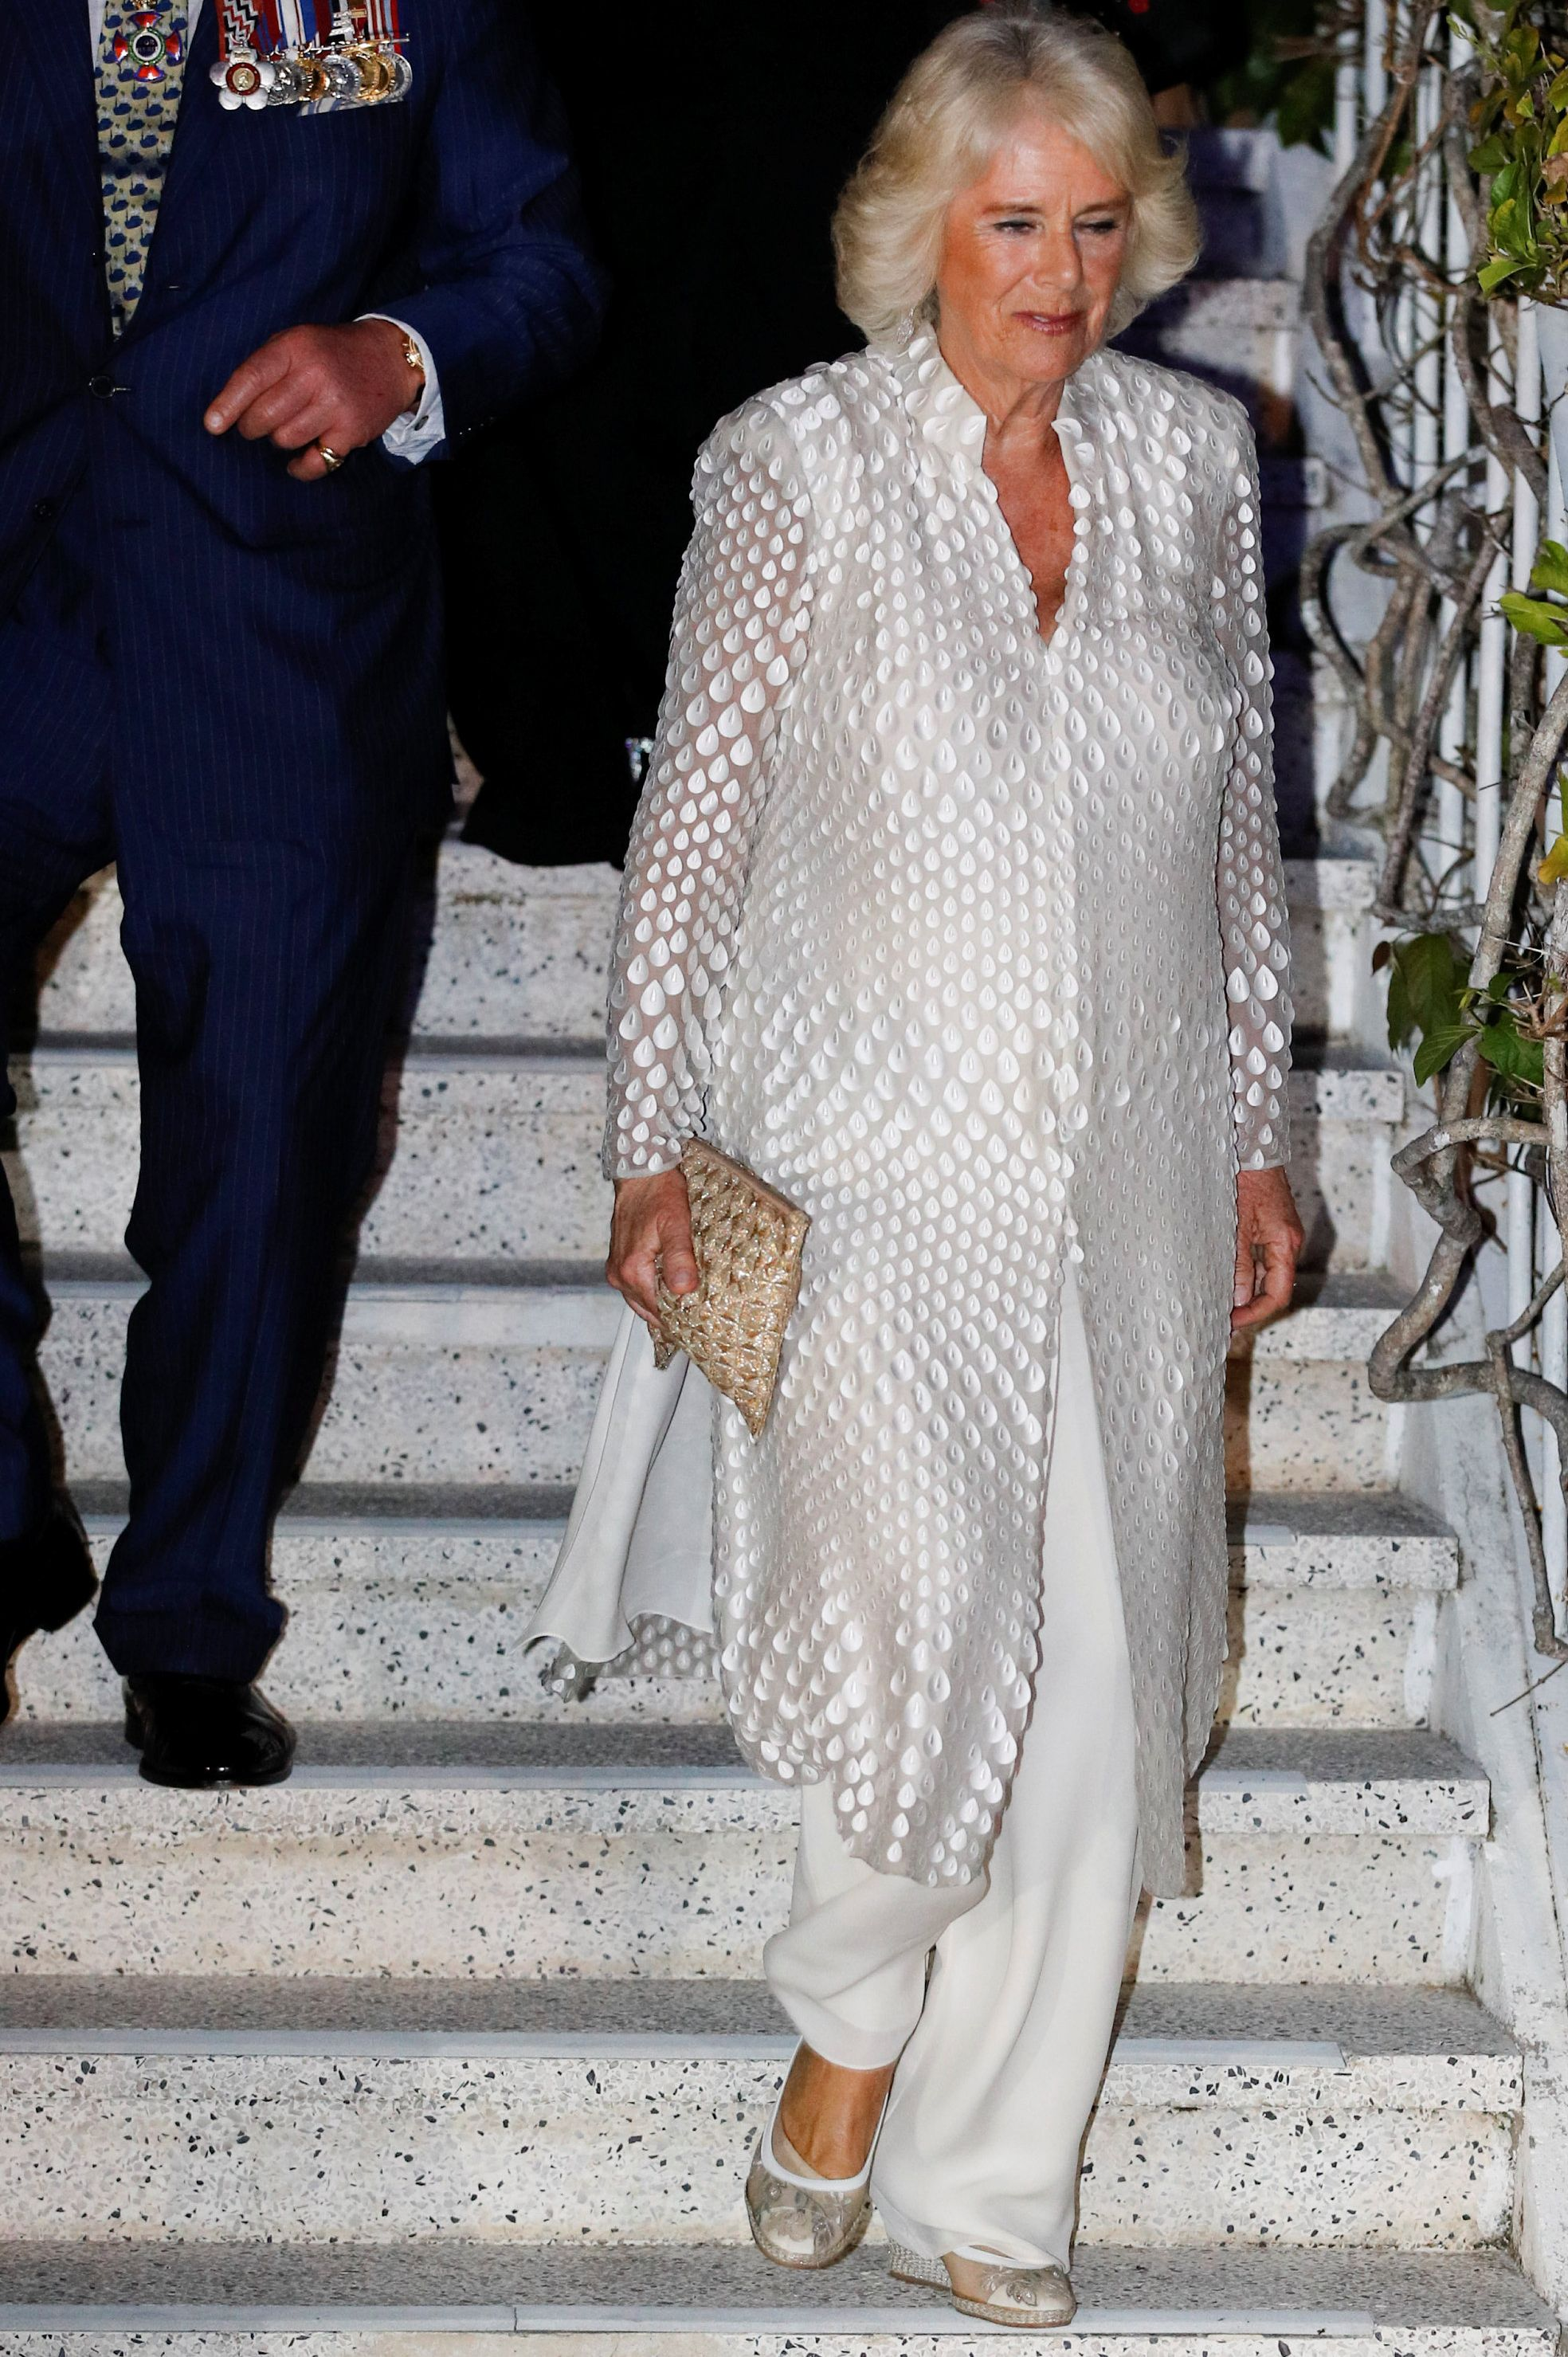 On the first night of Camilla and Charles's Caribbean tour , the Duchess paired a white sheer caftan with appliqué detailing, white wide-legged dress pants, and a wicker clutch for a dinner at Prime Minister's residence in Barbados.